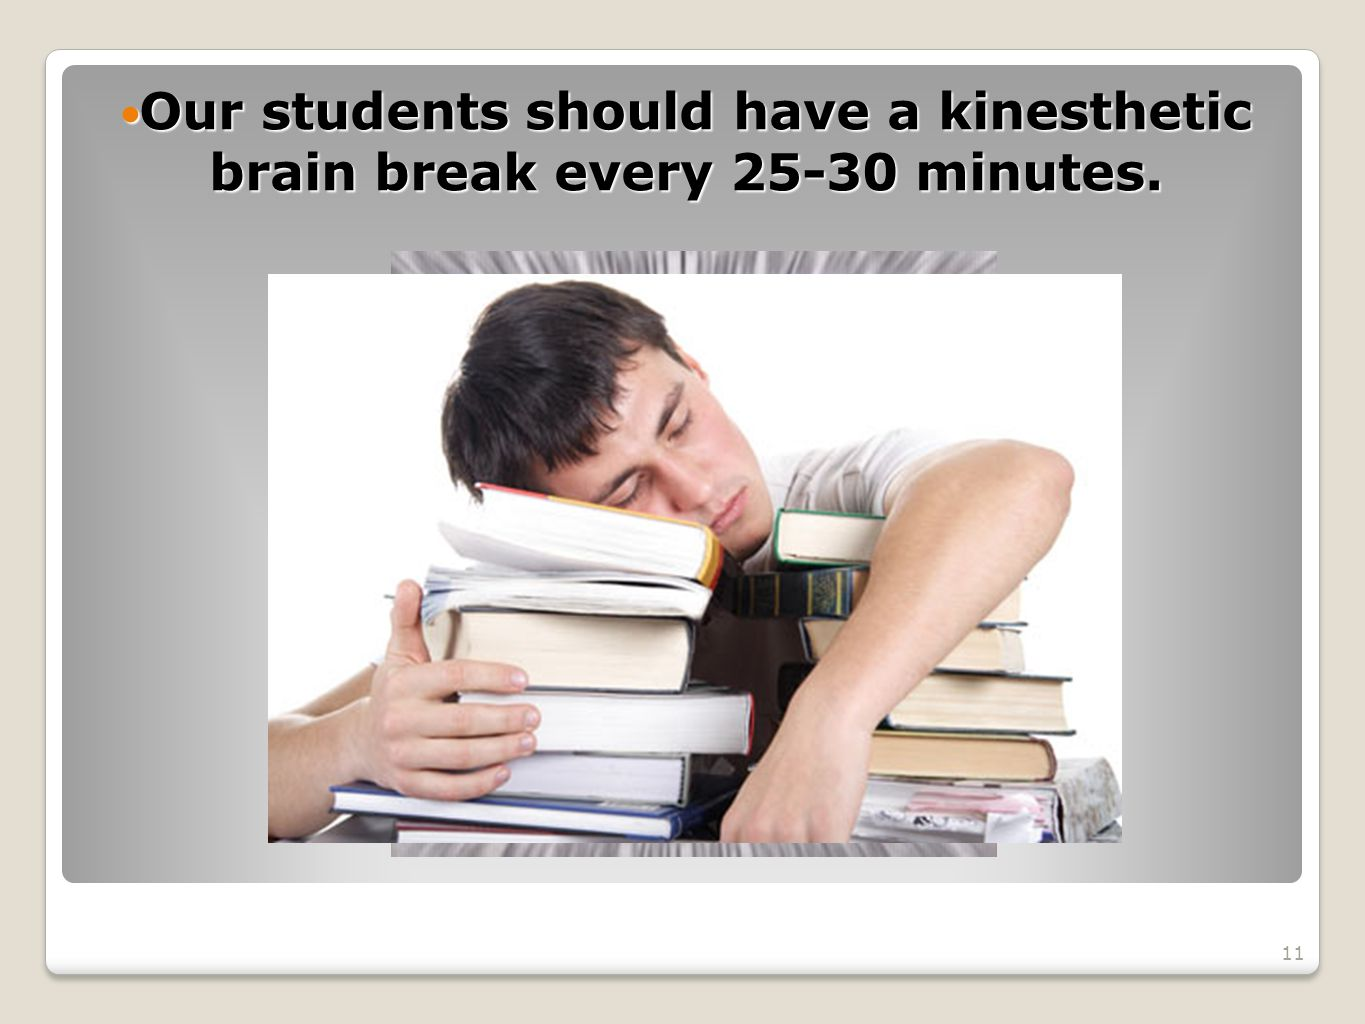 Our students should have a kinesthetic brain break every 25-30 minutes.